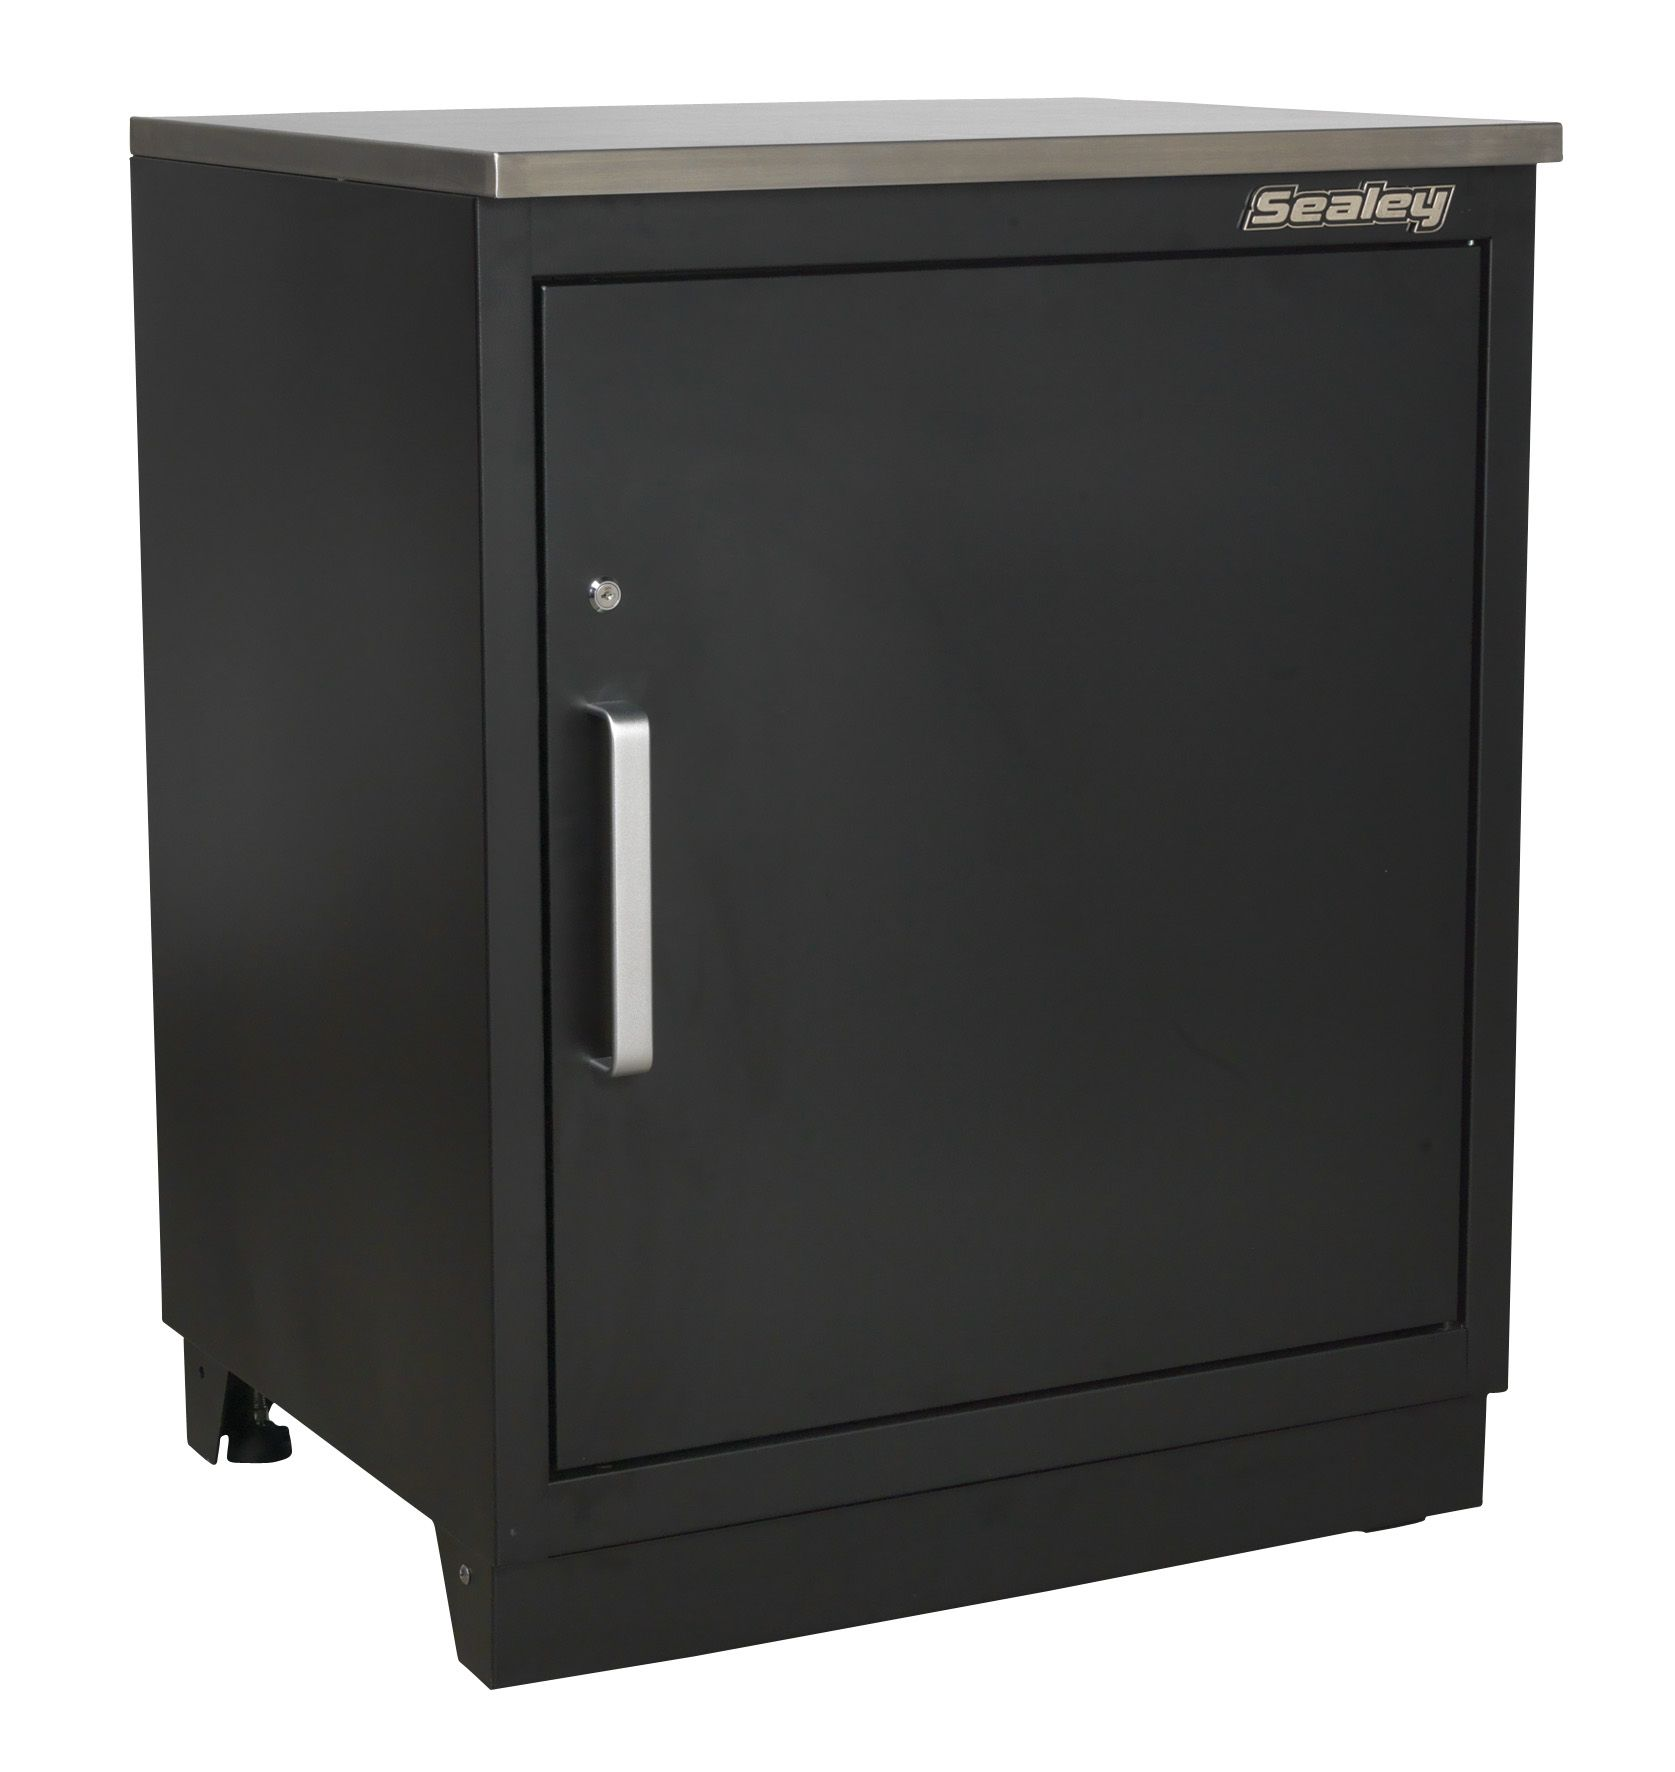 Sealey Premier Modular Floor Cabinet 1 Door 775mm Heavy-Duty